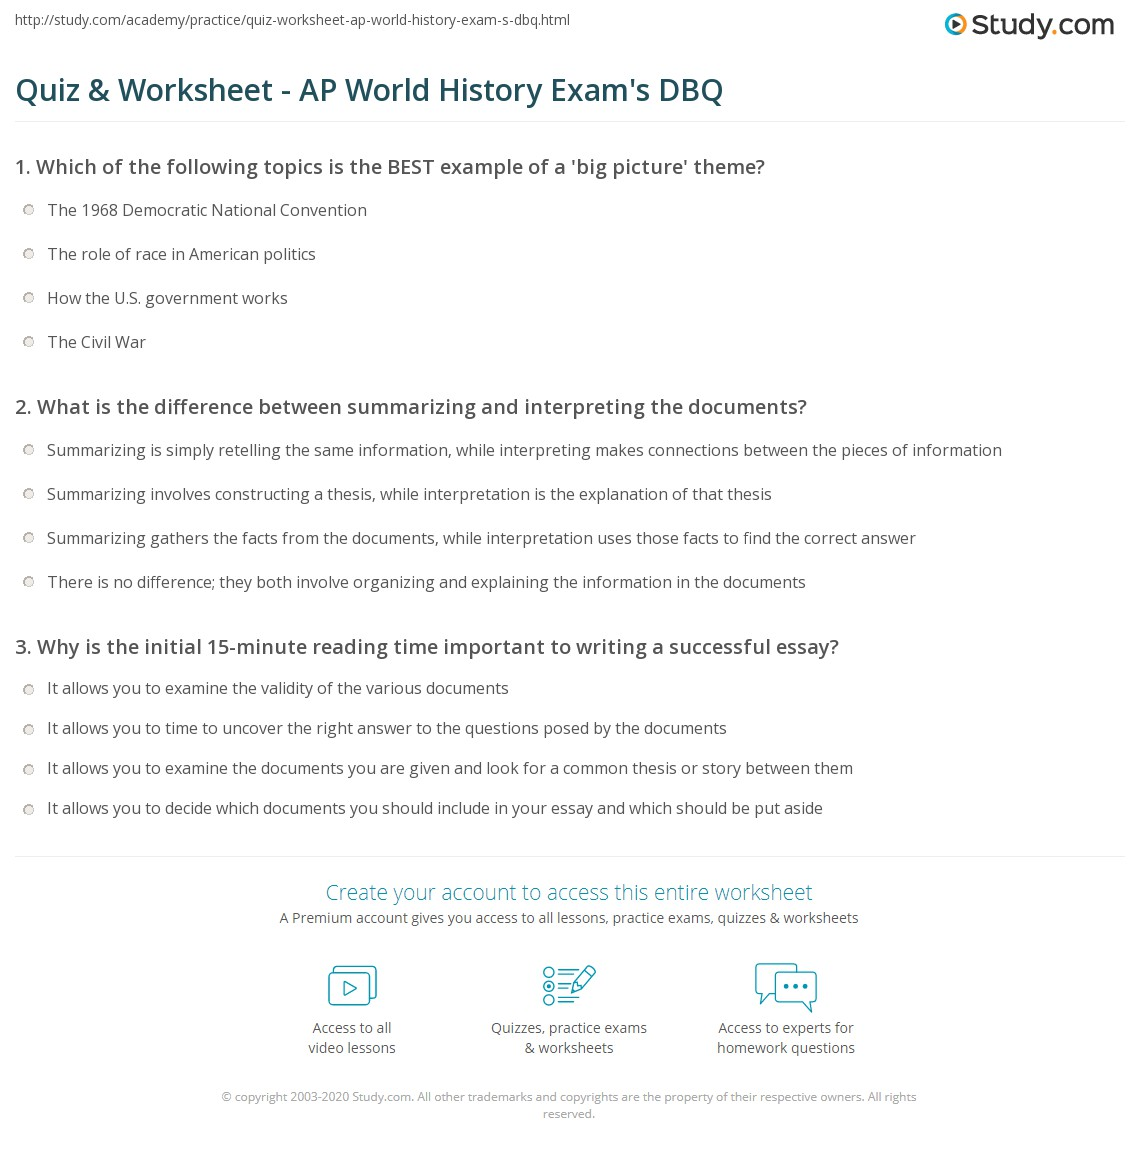 u.s history ap exam essay questions Sample student responses to an ap us history long essay question,  exam questions and other helpful informationand long essay questions and for.